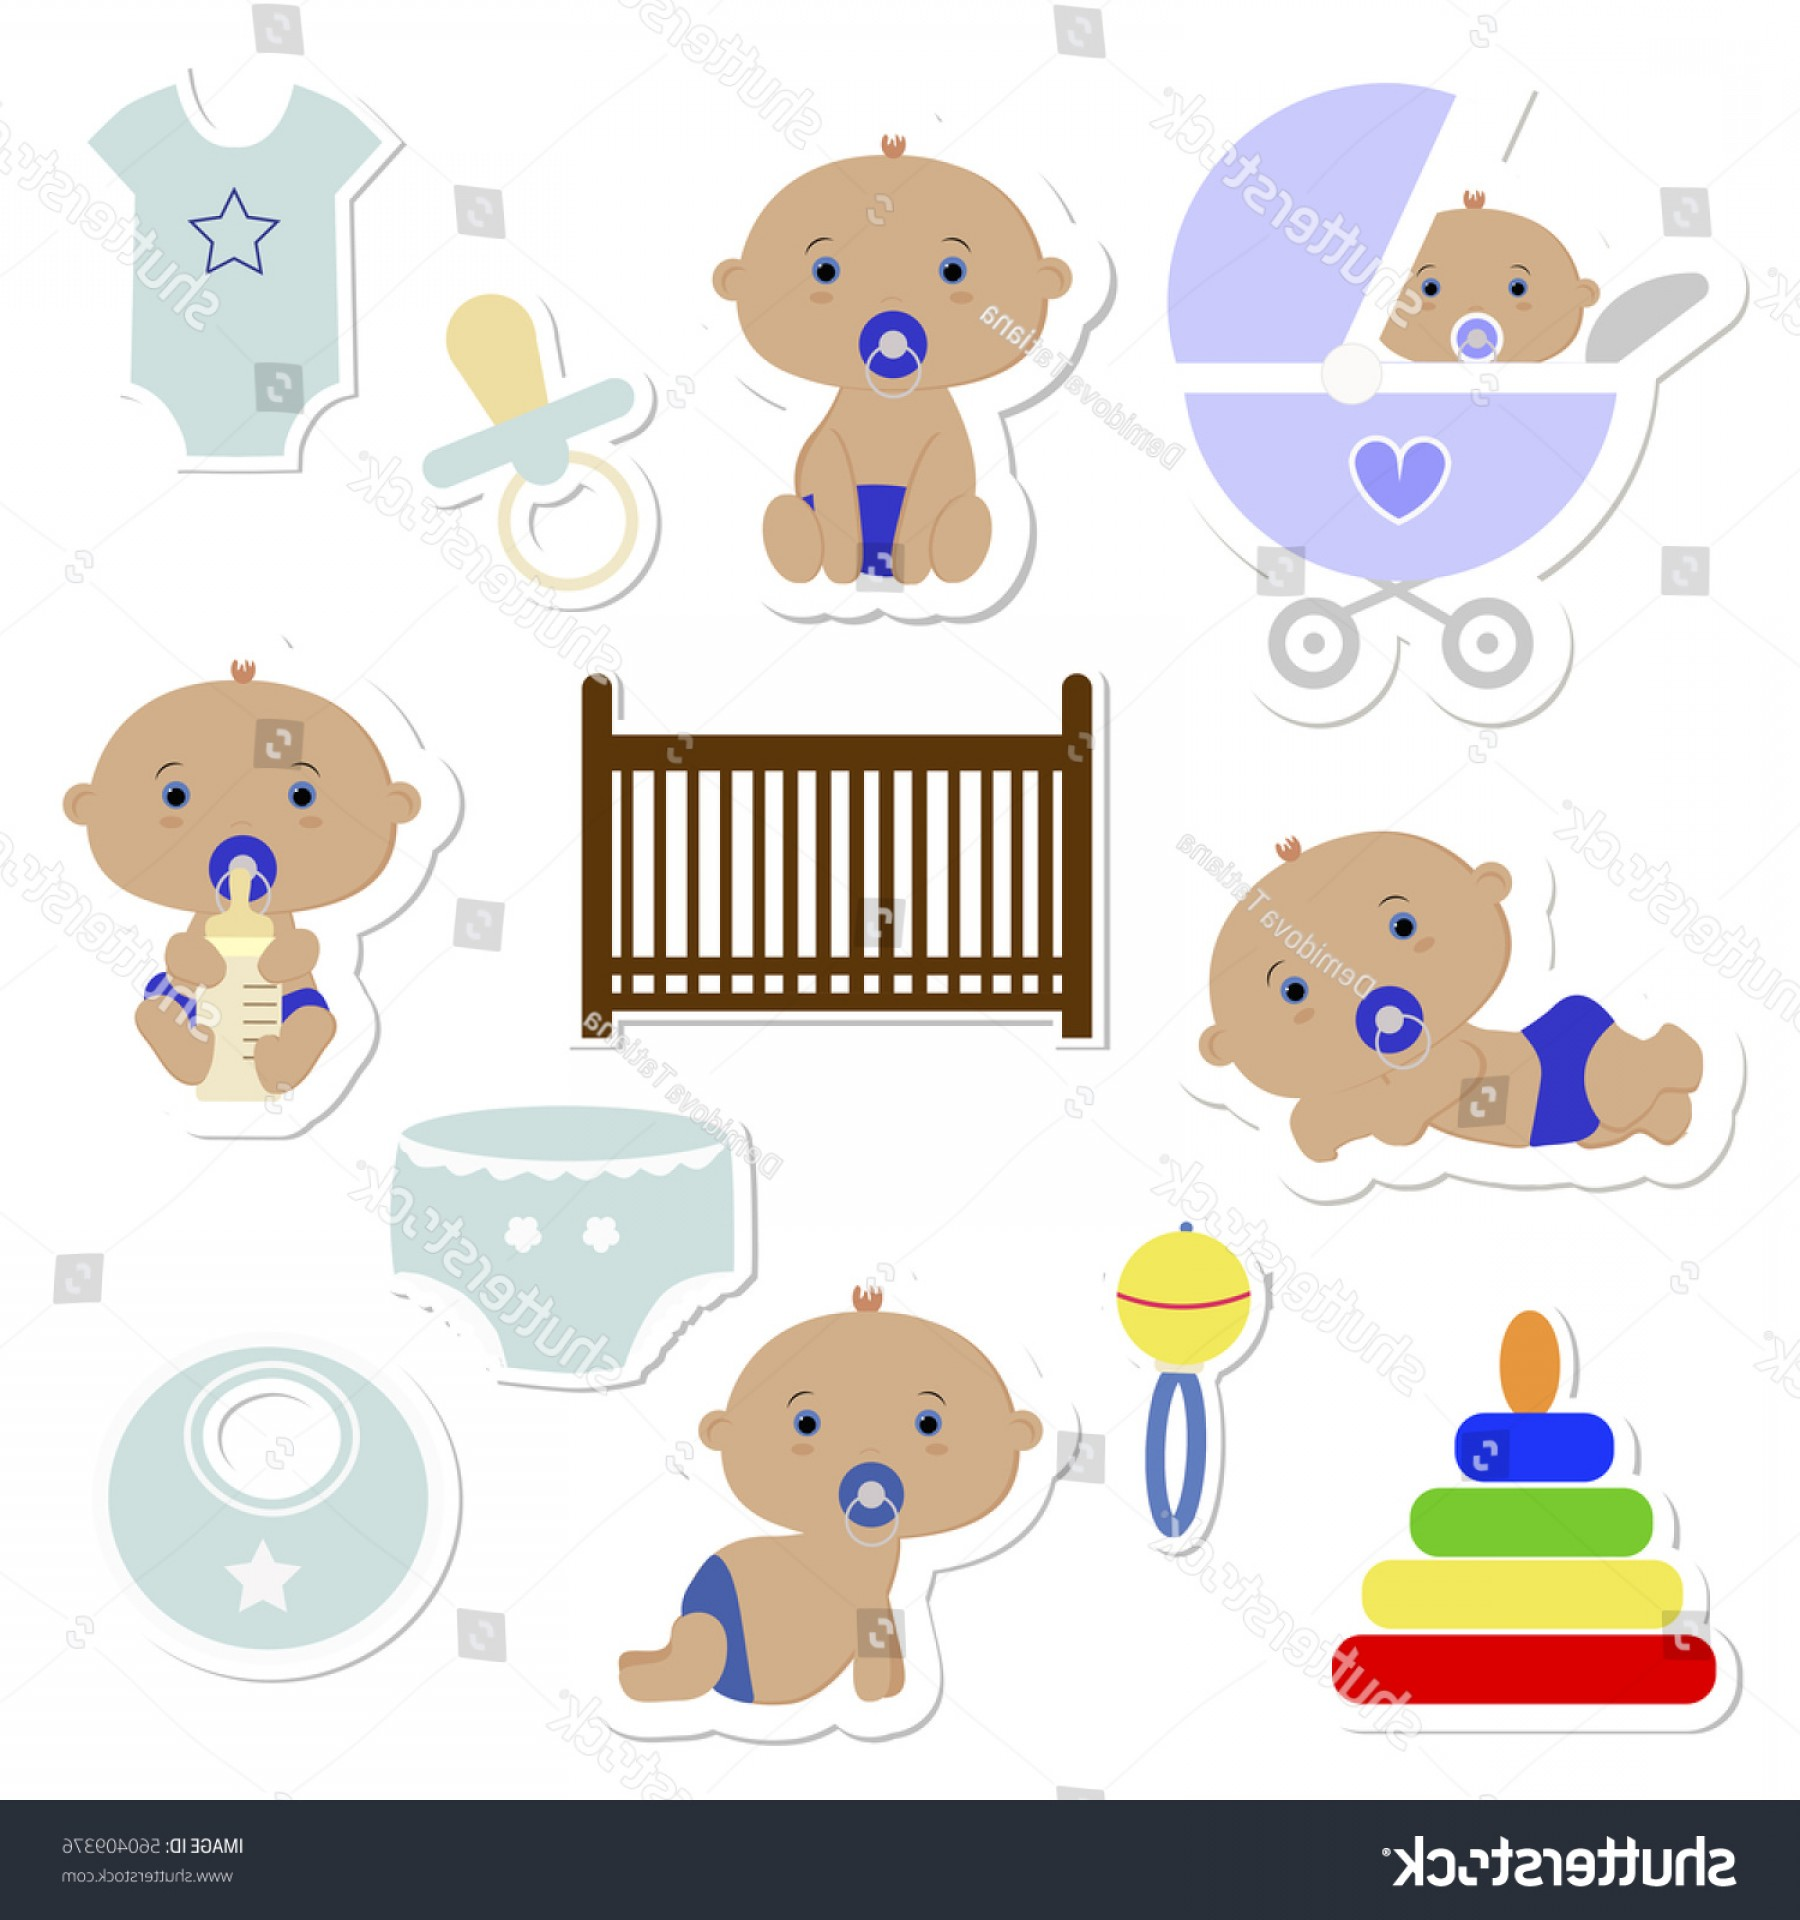 Nautical Vector Art Baby Rattle: Baby Shower Stickers Boy Icons Vector